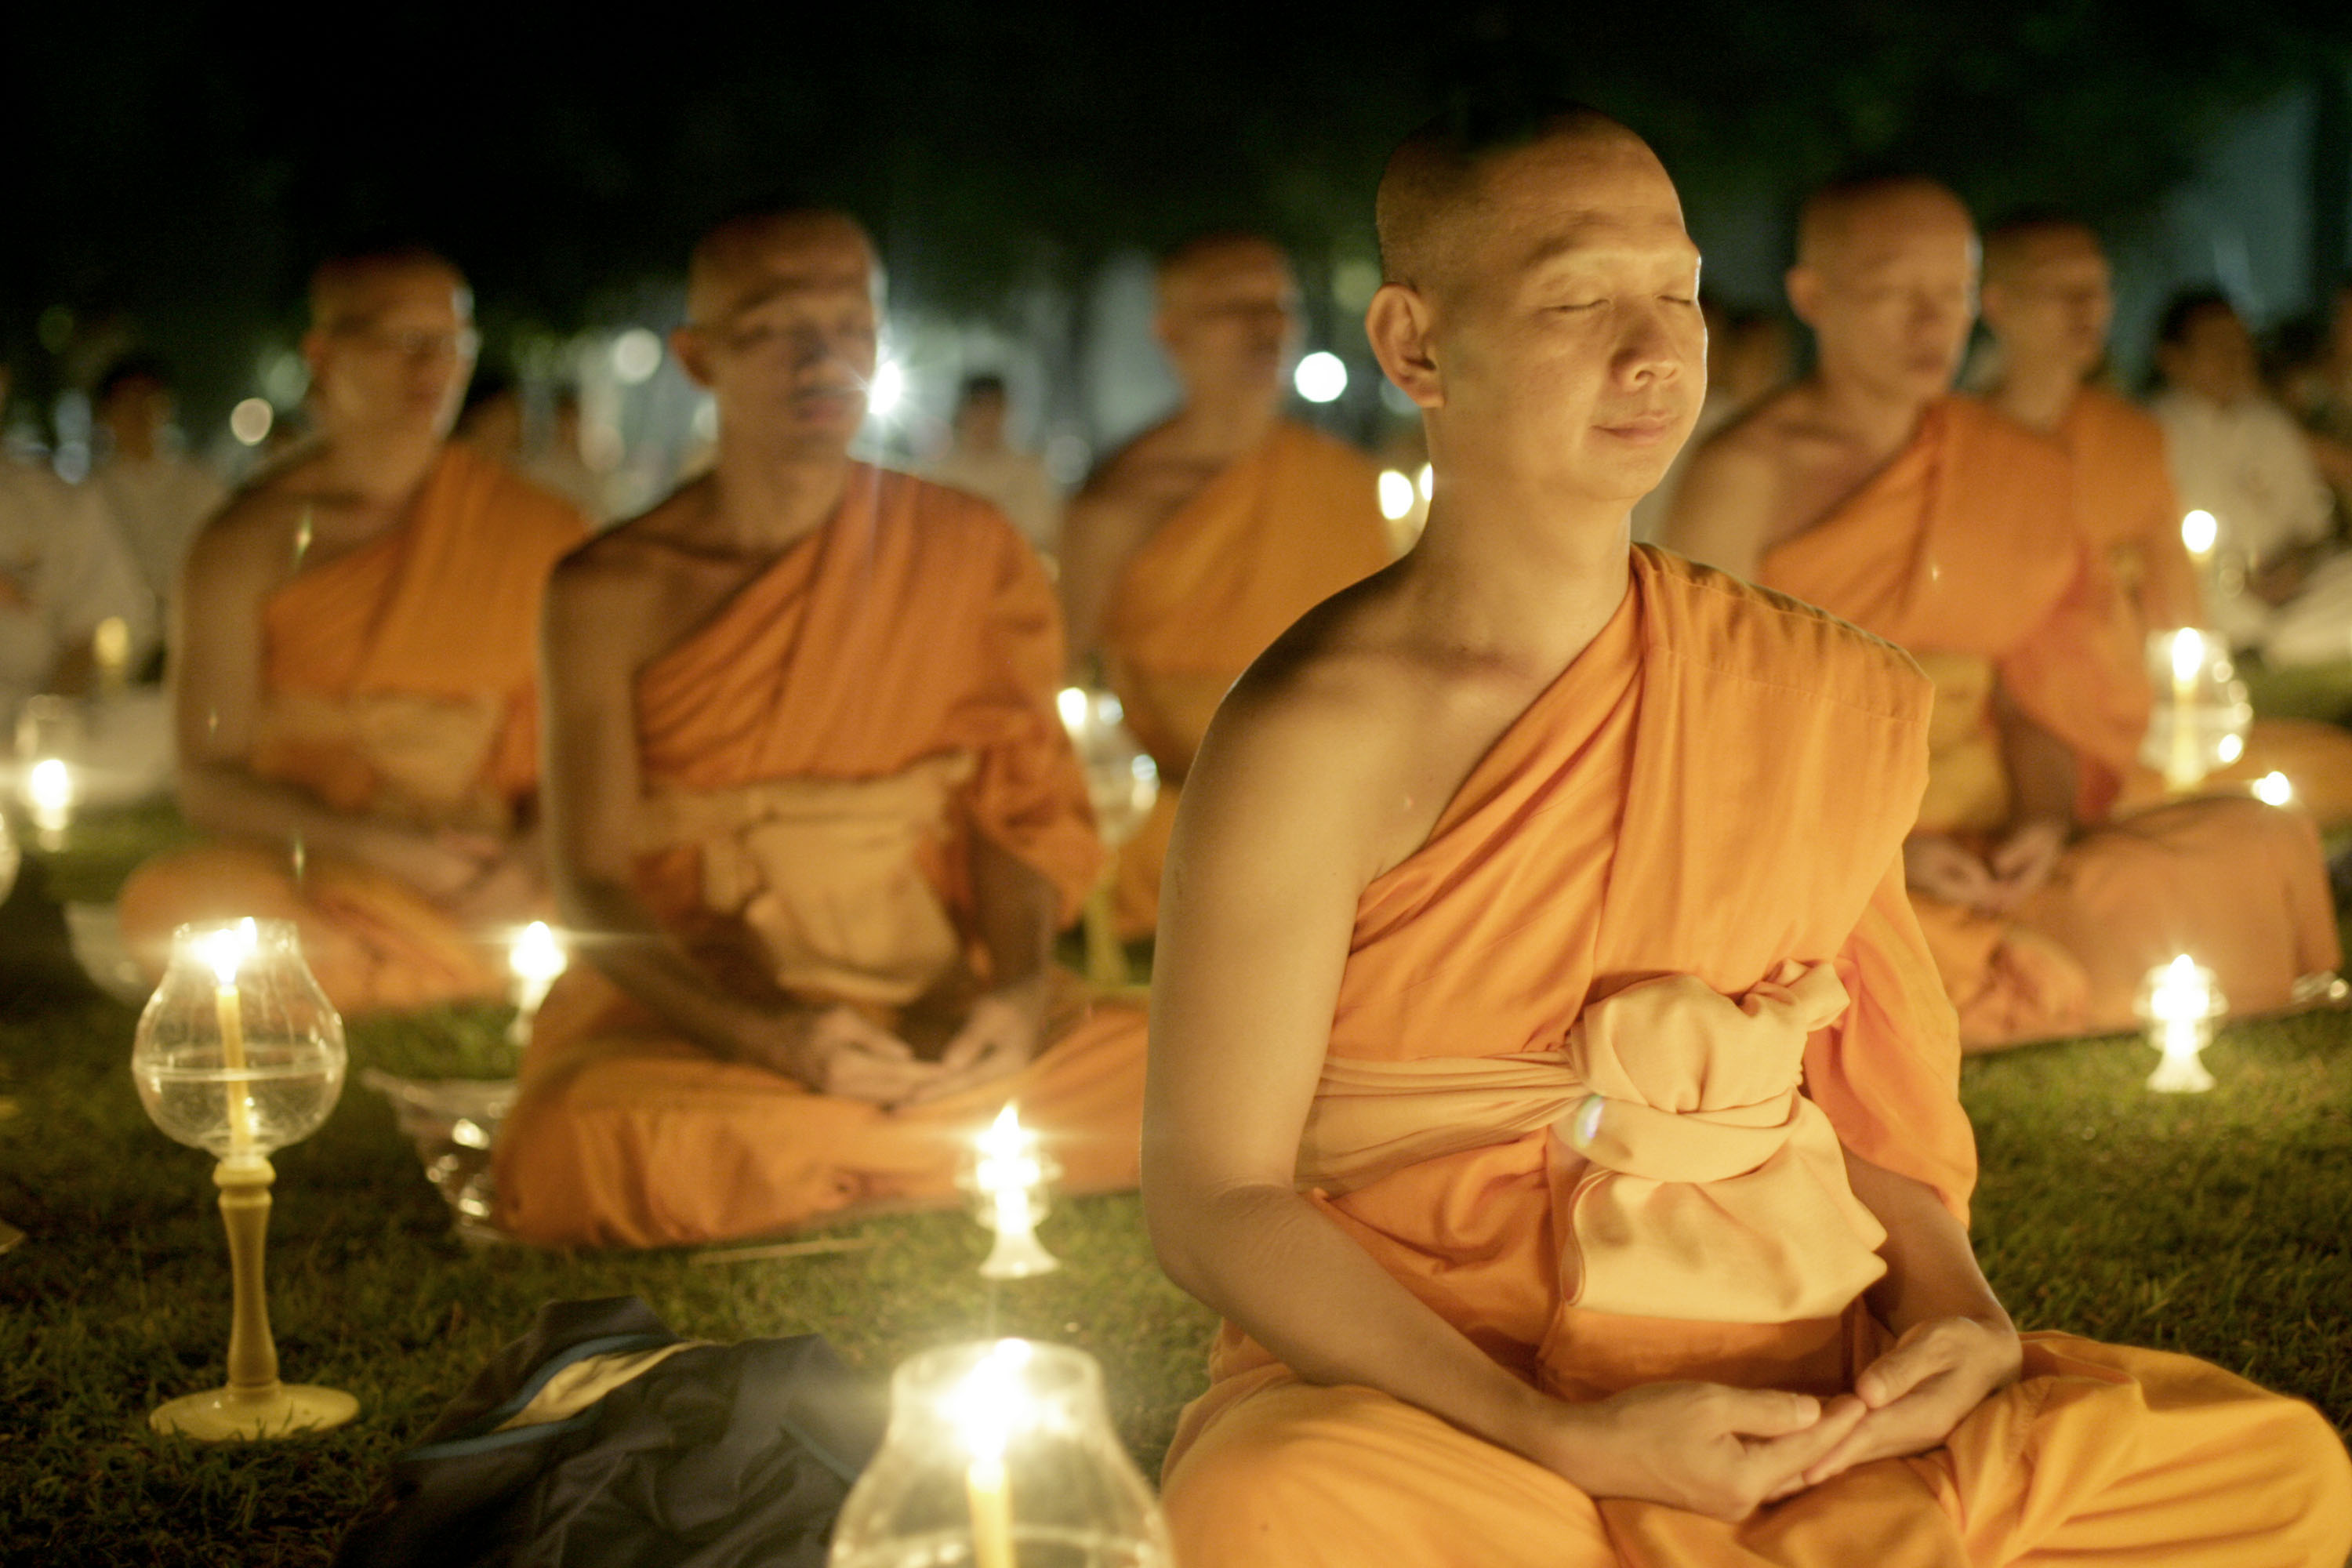 """MAGELANG, JAVA, INDONESIA - JUNE 1: Buddhist monks meditate at the yard of Borobudur temple, built between 750 and 842 AD, June 1, 2007 in Magelang, Central Java province, Indonesia. Buddhists in Indonesia celebrate Vesak Day or """"the day of Buddha's birth, his enlightenment and his reaching of nirvana"""" today. (Photo by Dimas Ardian/Getty Images)"""